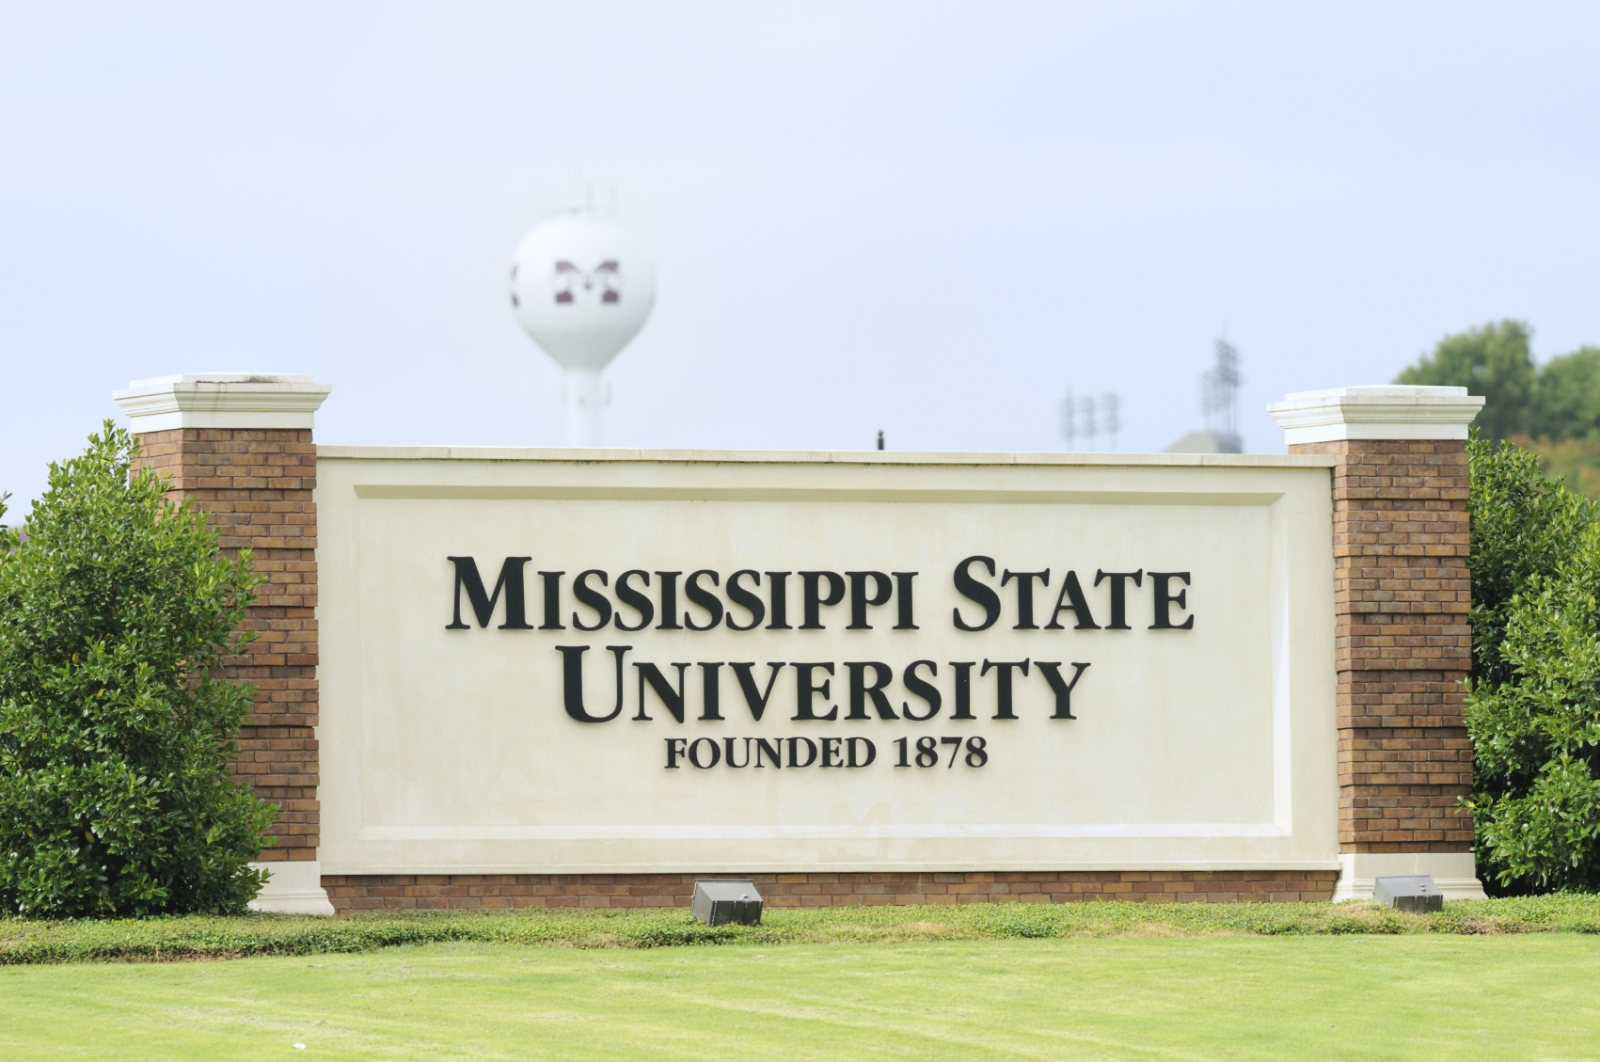 mississippi state university shooter arrested on campus